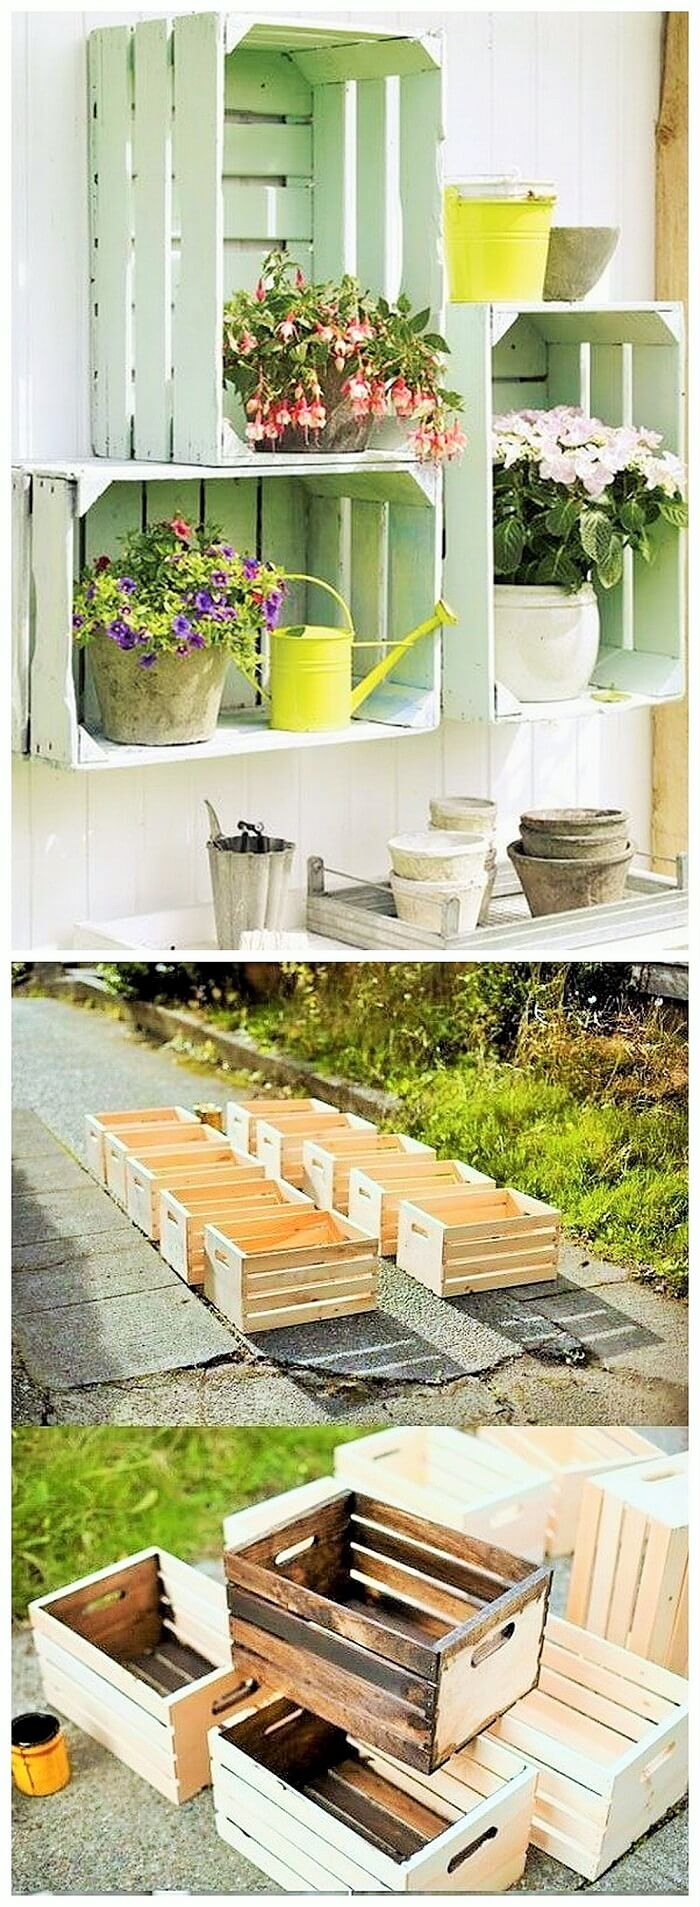 DIY-wooden-Pallets-projects-Ideas (2)